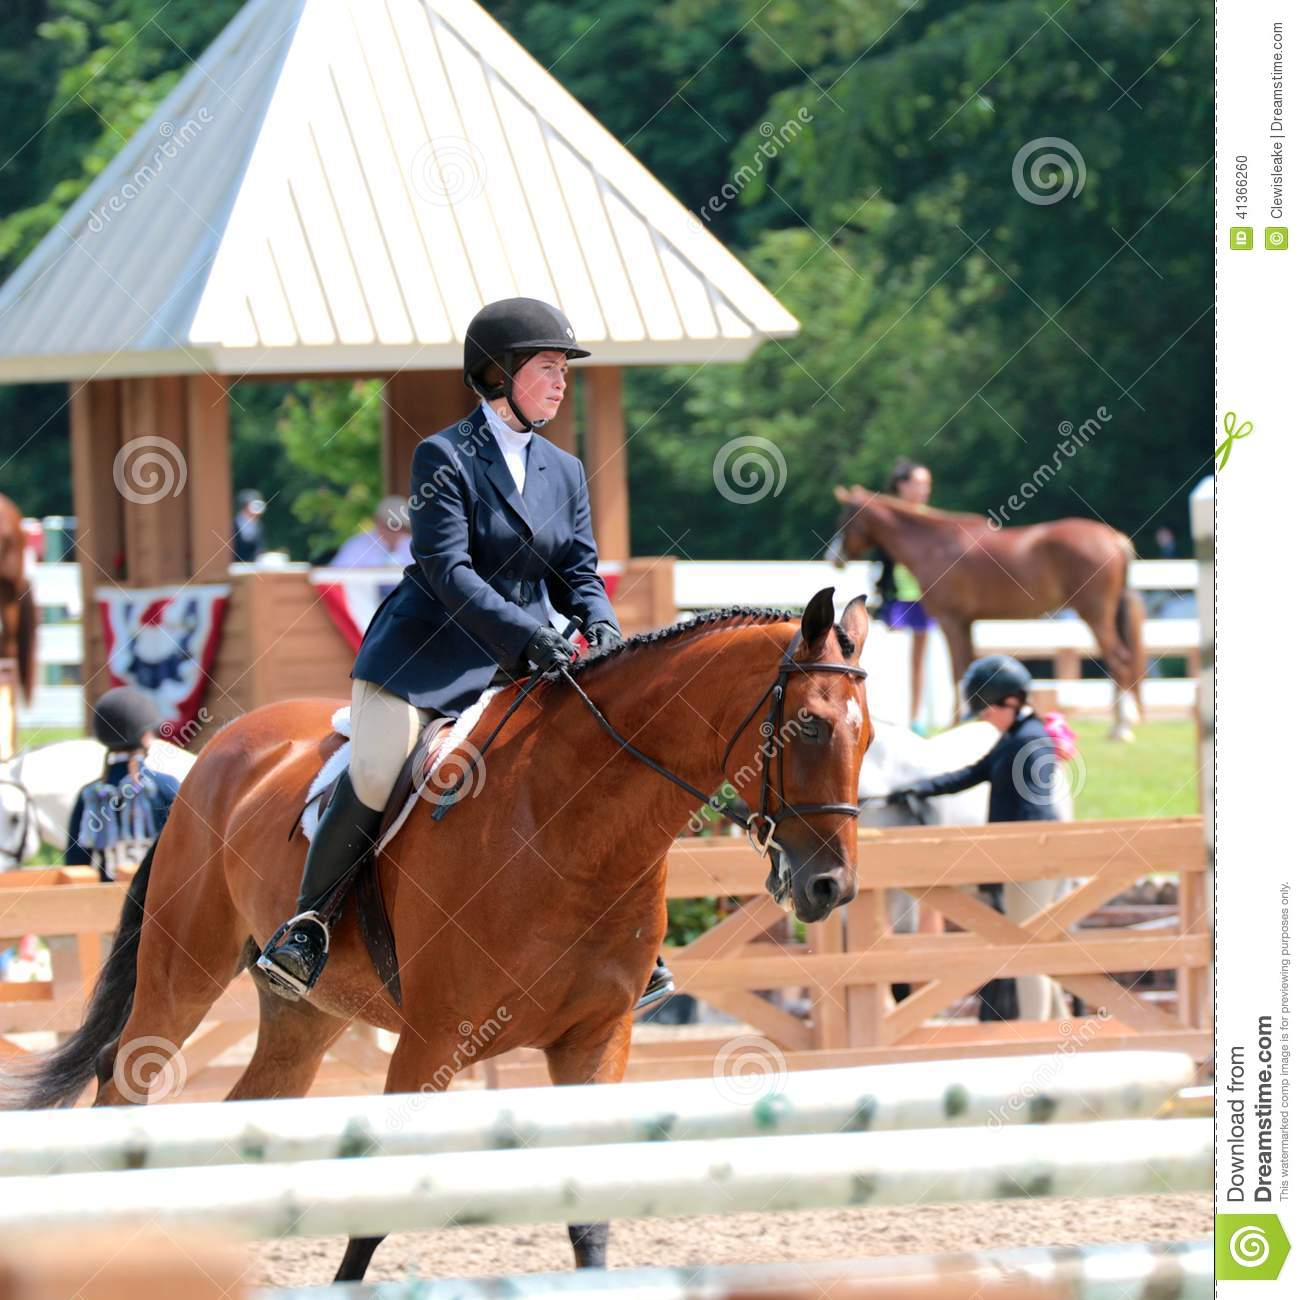 A Young Teenage Girl Rides A Horse In The Germantown Charity Horse Show